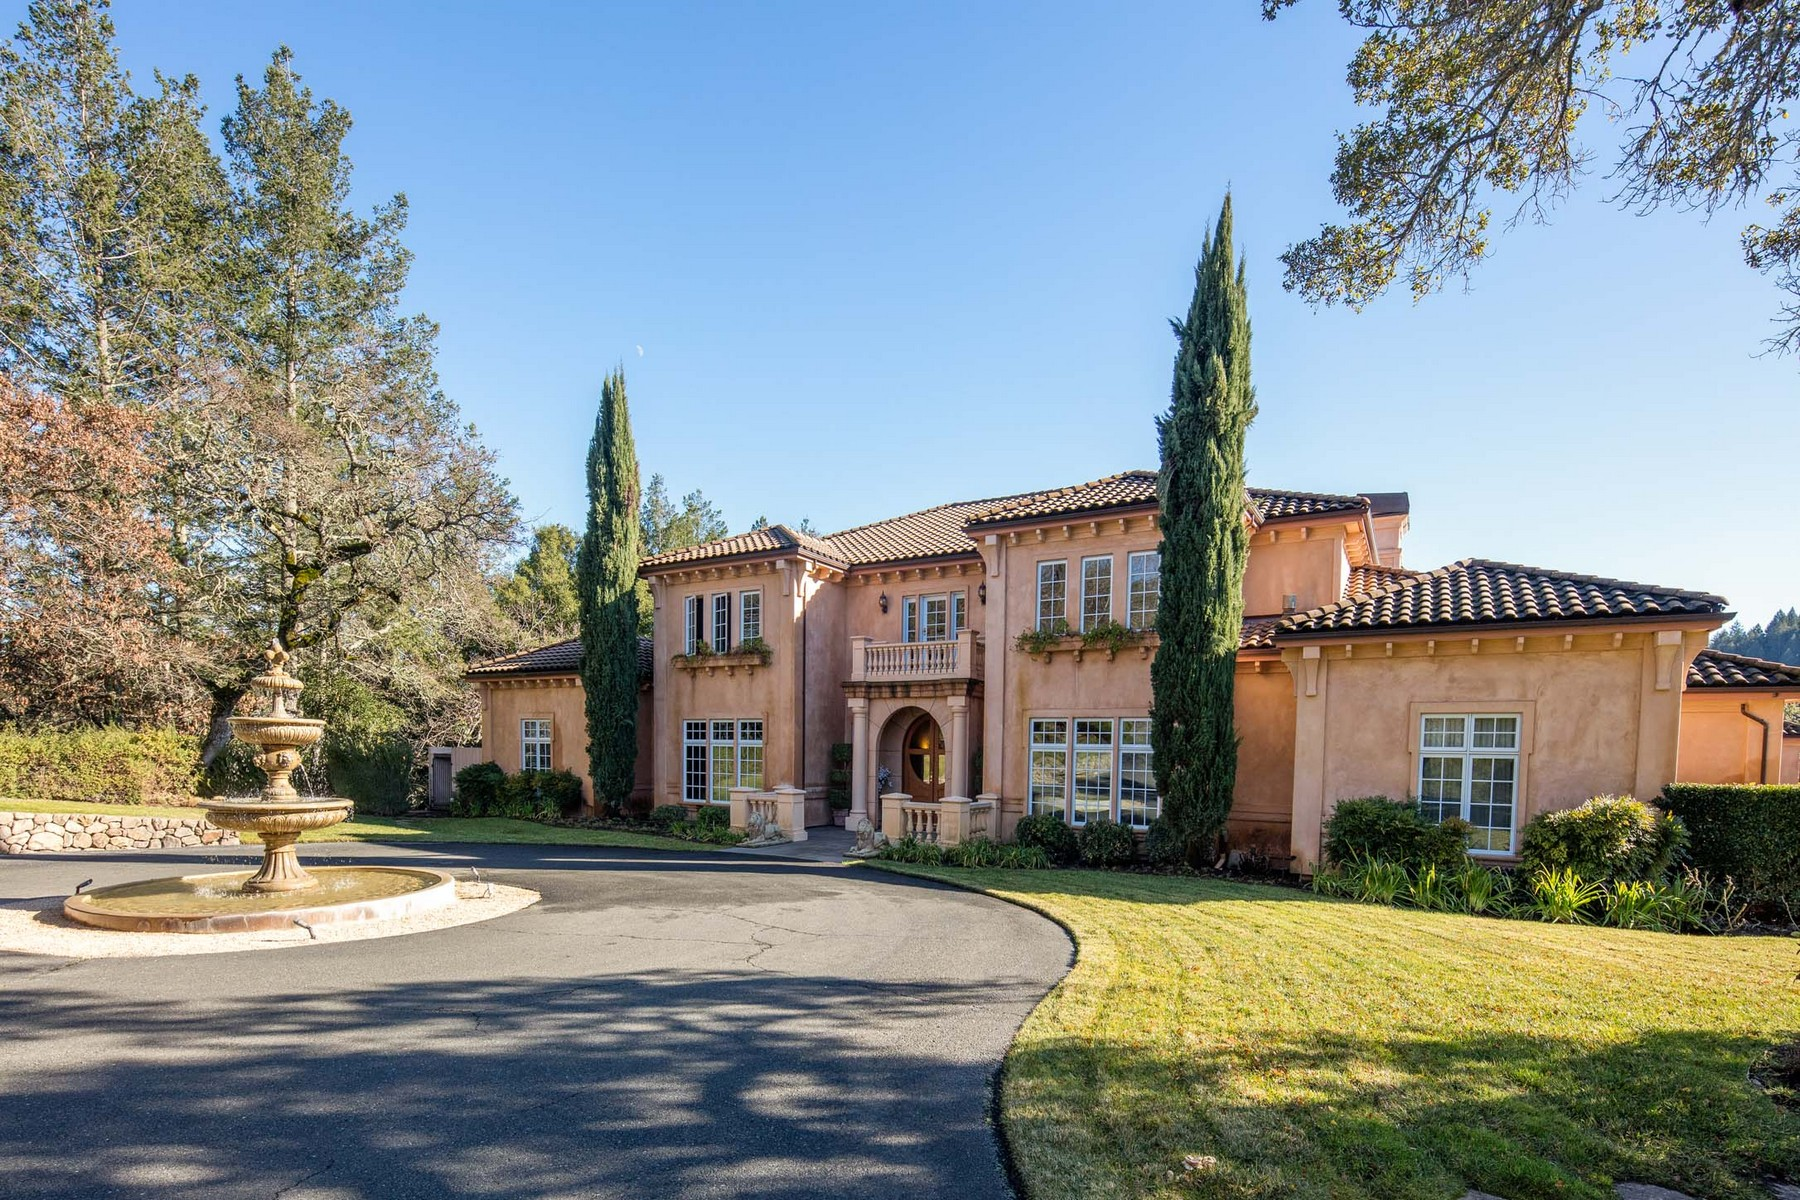 Single Family Home for Sale at Majestic 40 Acre Vineyard Estate 2910 Spring Mountain Road St. Helena, California 94574 United States